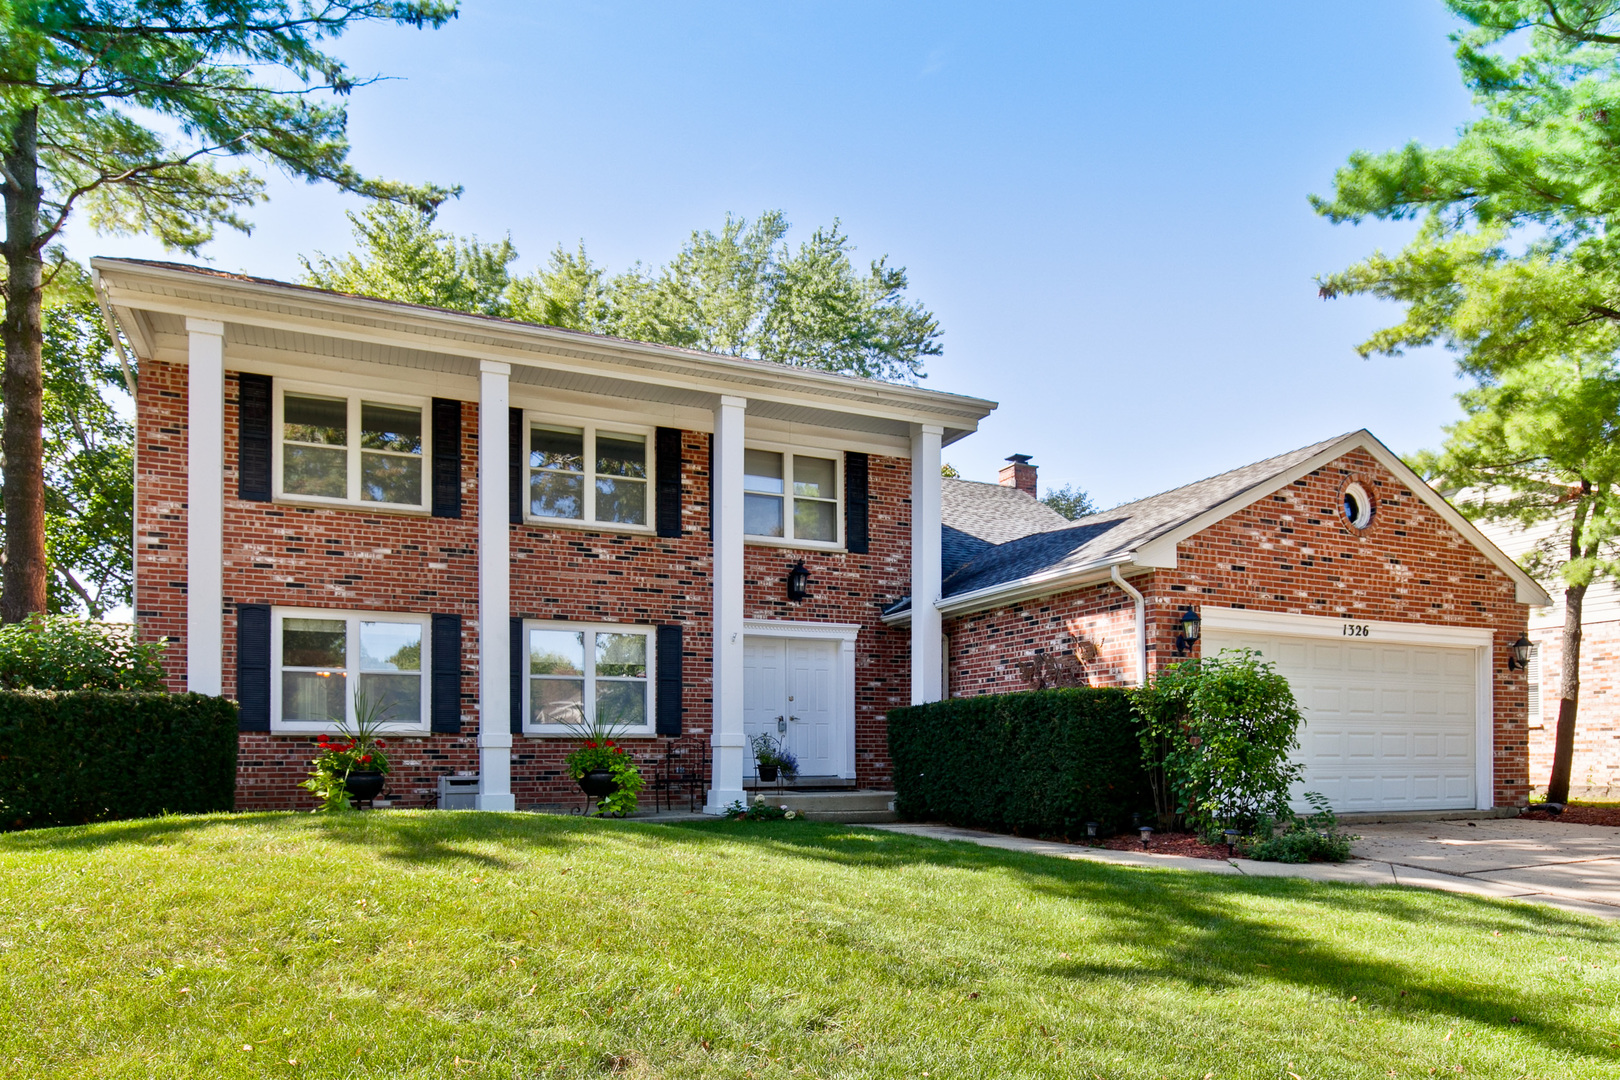 1326 Rose Court West, Buffalo Grove in Cook County, IL 60089 Home for Sale